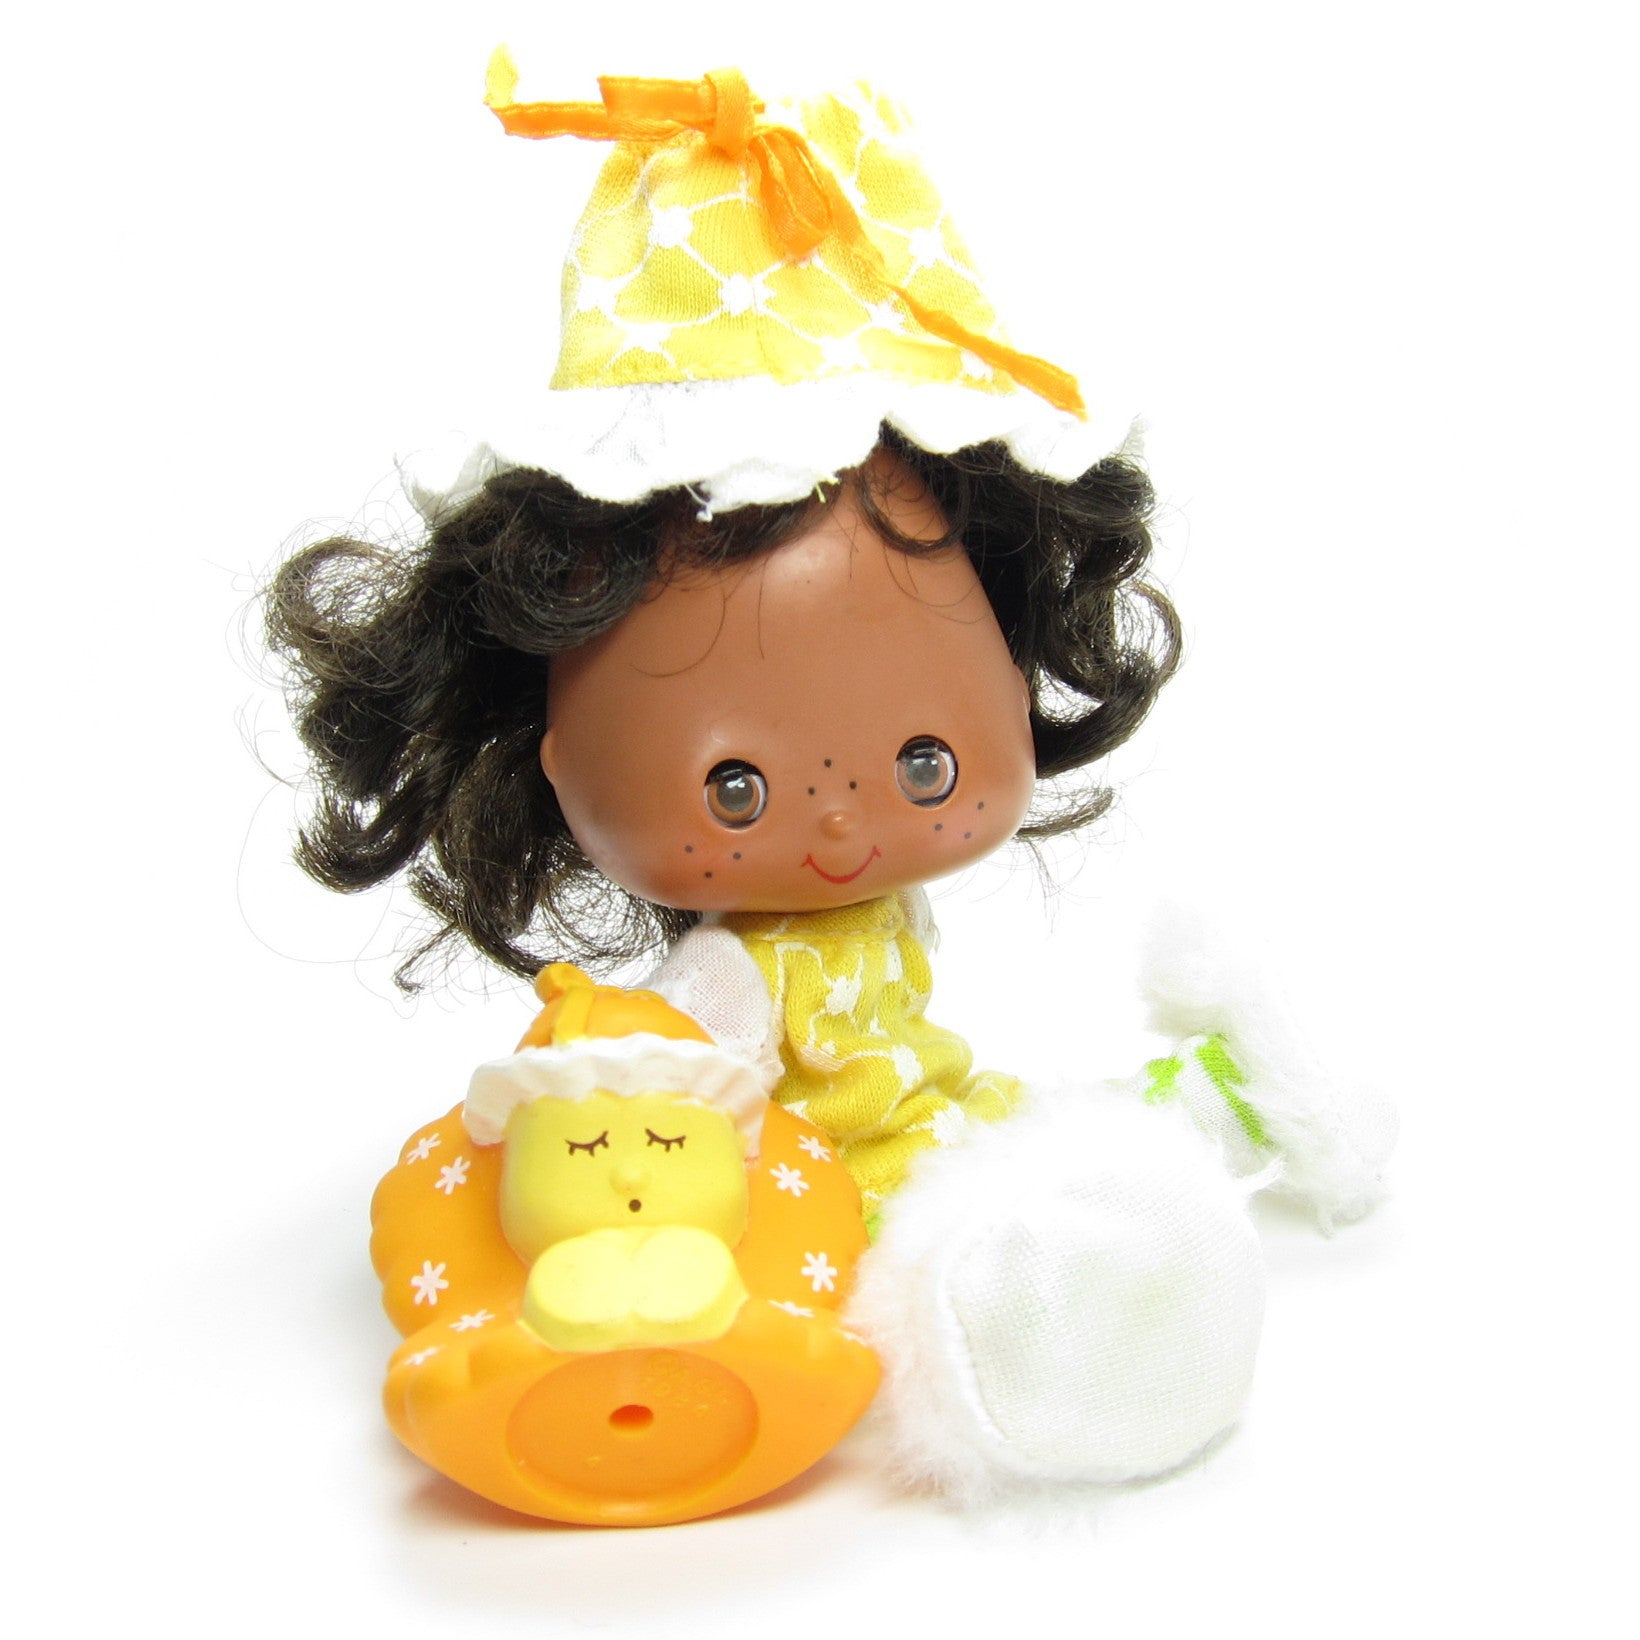 Uncategorized Orange Blossom Strawberry Shortcake orange blossom sweet sleeper doll with marmalade butterfly pet pet